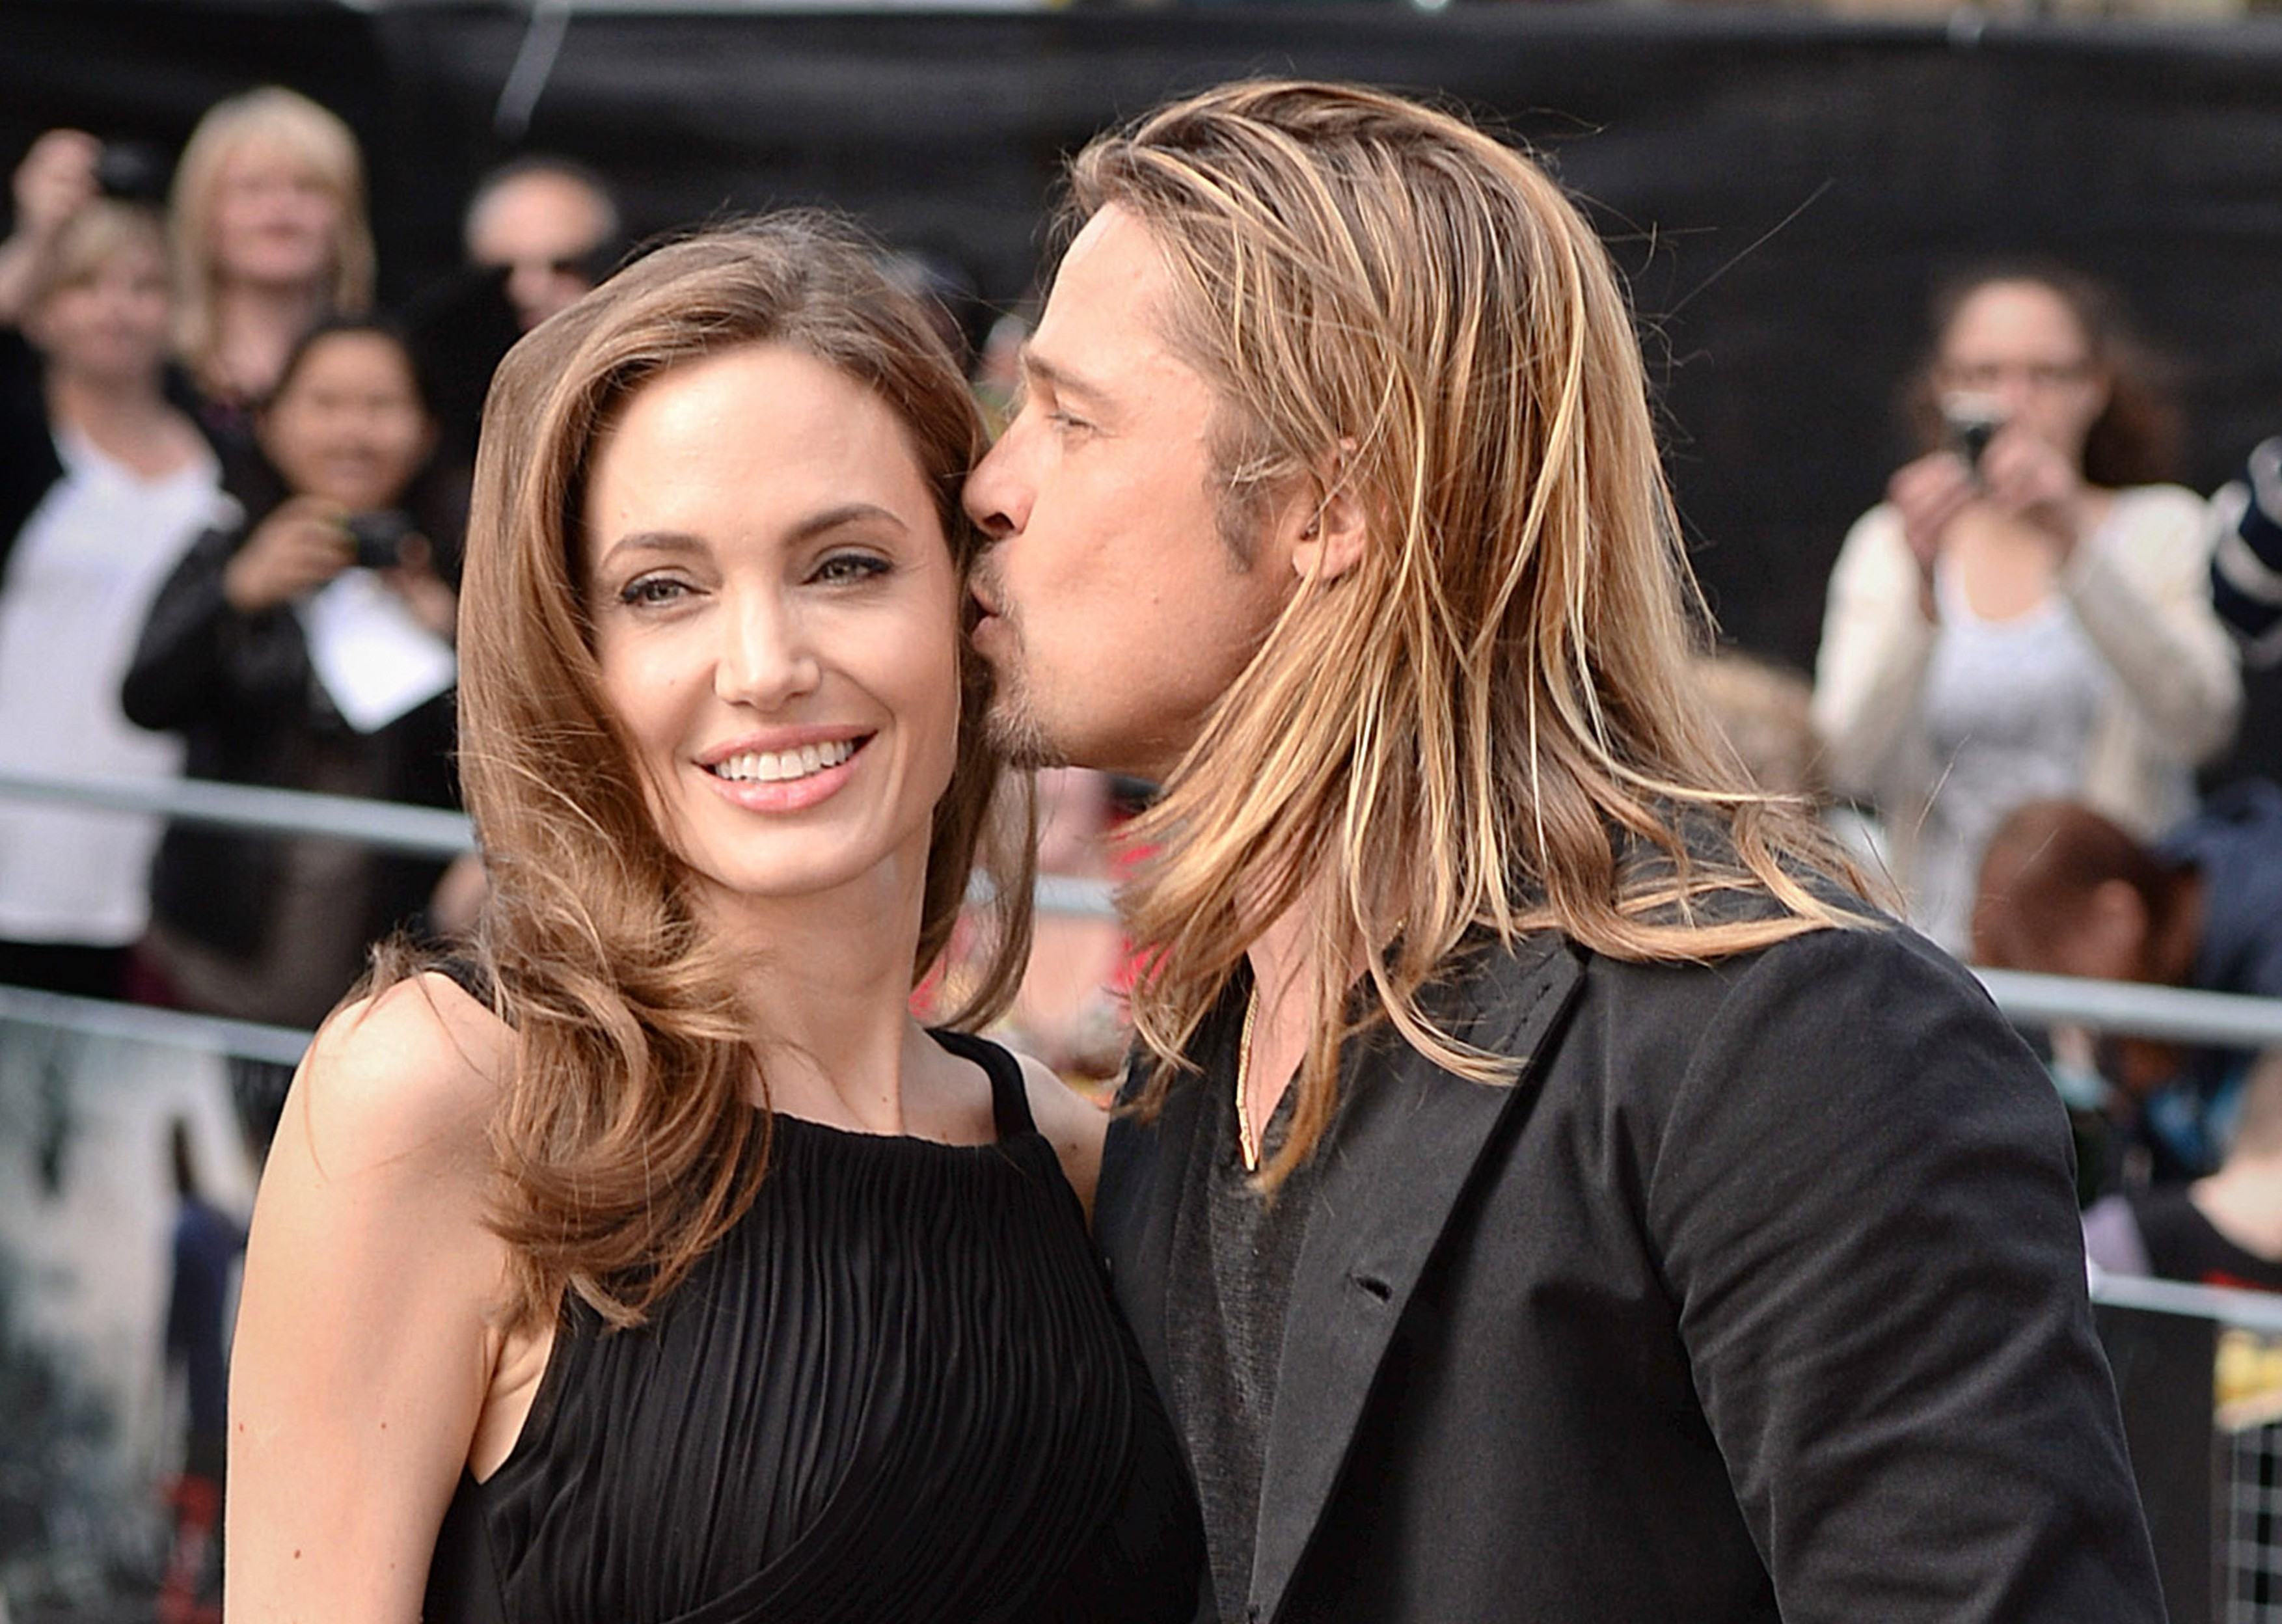 File photo dated 02/06/13 of Brad Pitt and his wife Angelina Jolie attending the world premiere of World War Z in London, as Hollywood star Jolie has filed for divorce, TMZ has reported., Image: 300491182, License: Rights-managed, Restrictions: FILE PHOTO, Model Release: no, Credit line: Profimedia, Press Association